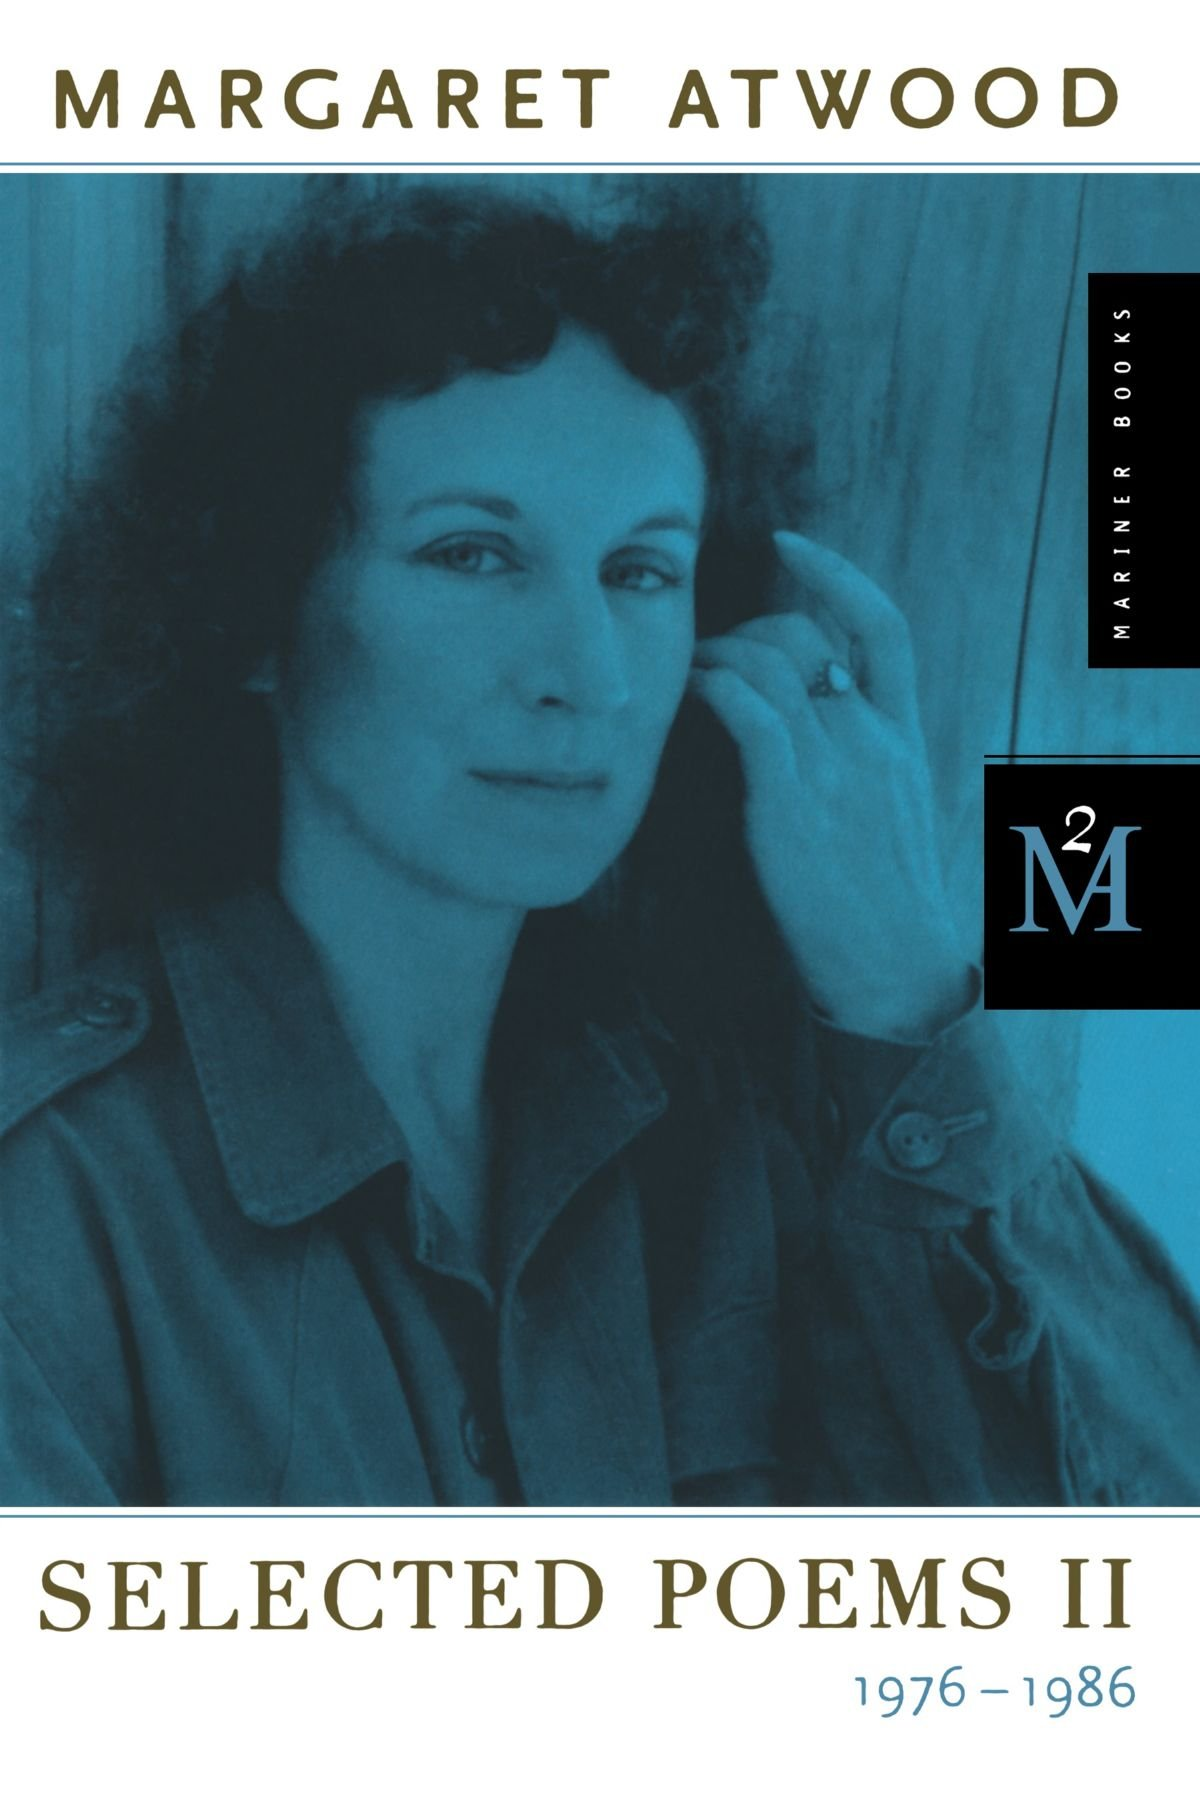 selected poems ii margaret atwood  selected poems ii 1976 1986 margaret atwood 9780395454060 com books